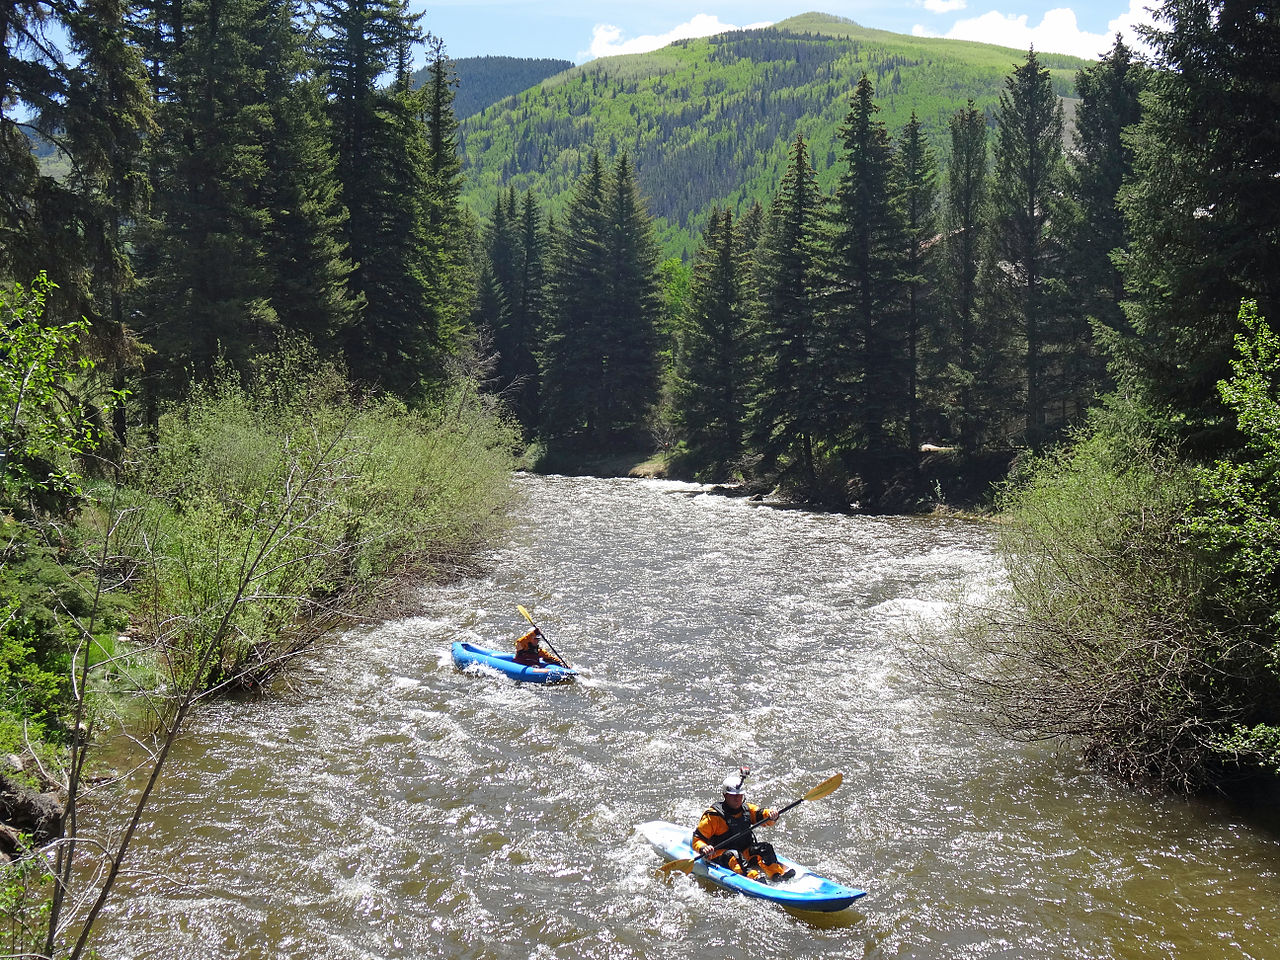 Gore Creek in Vail, Colorado